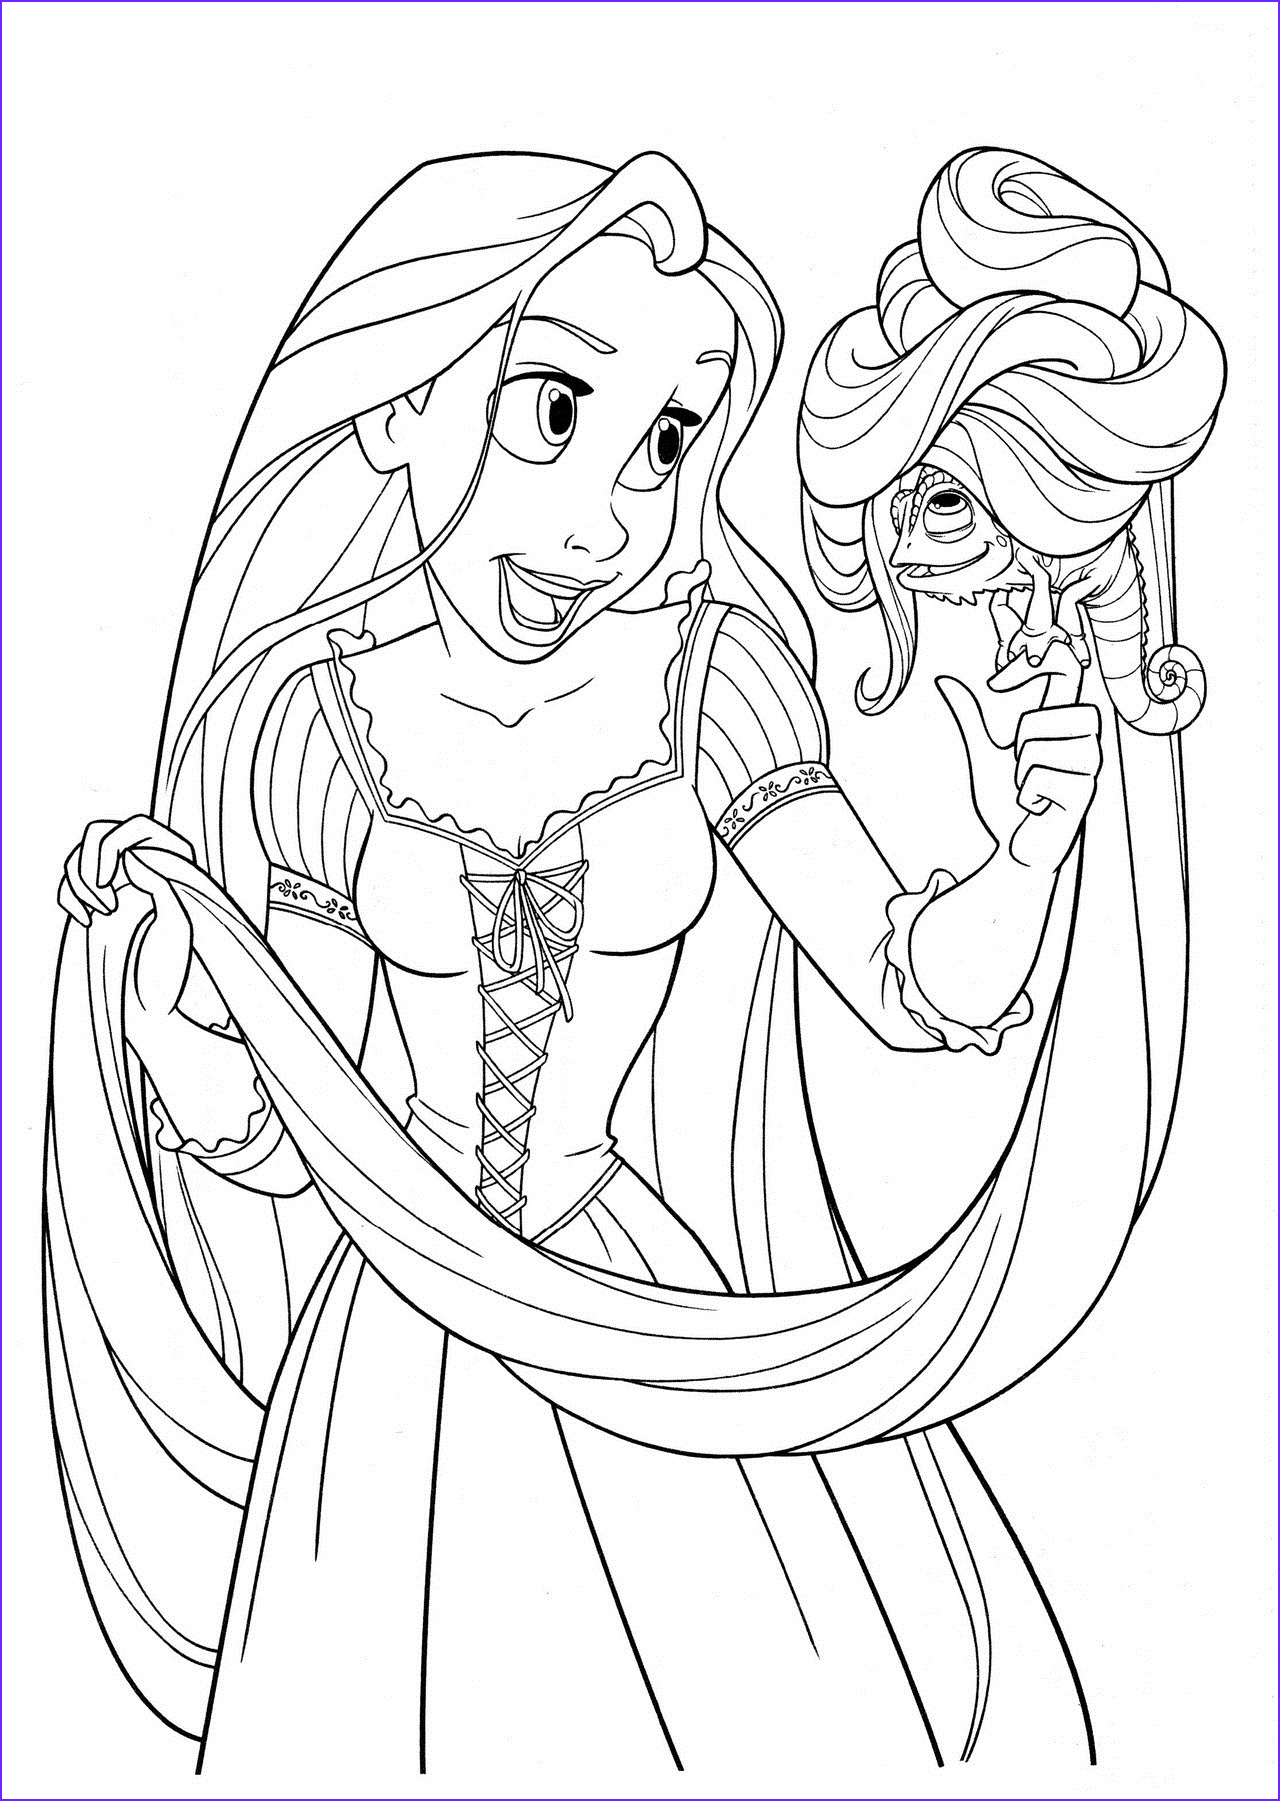 Coloring Pages to Print Best Of Images Free Printable Tangled Coloring Pages for Kids